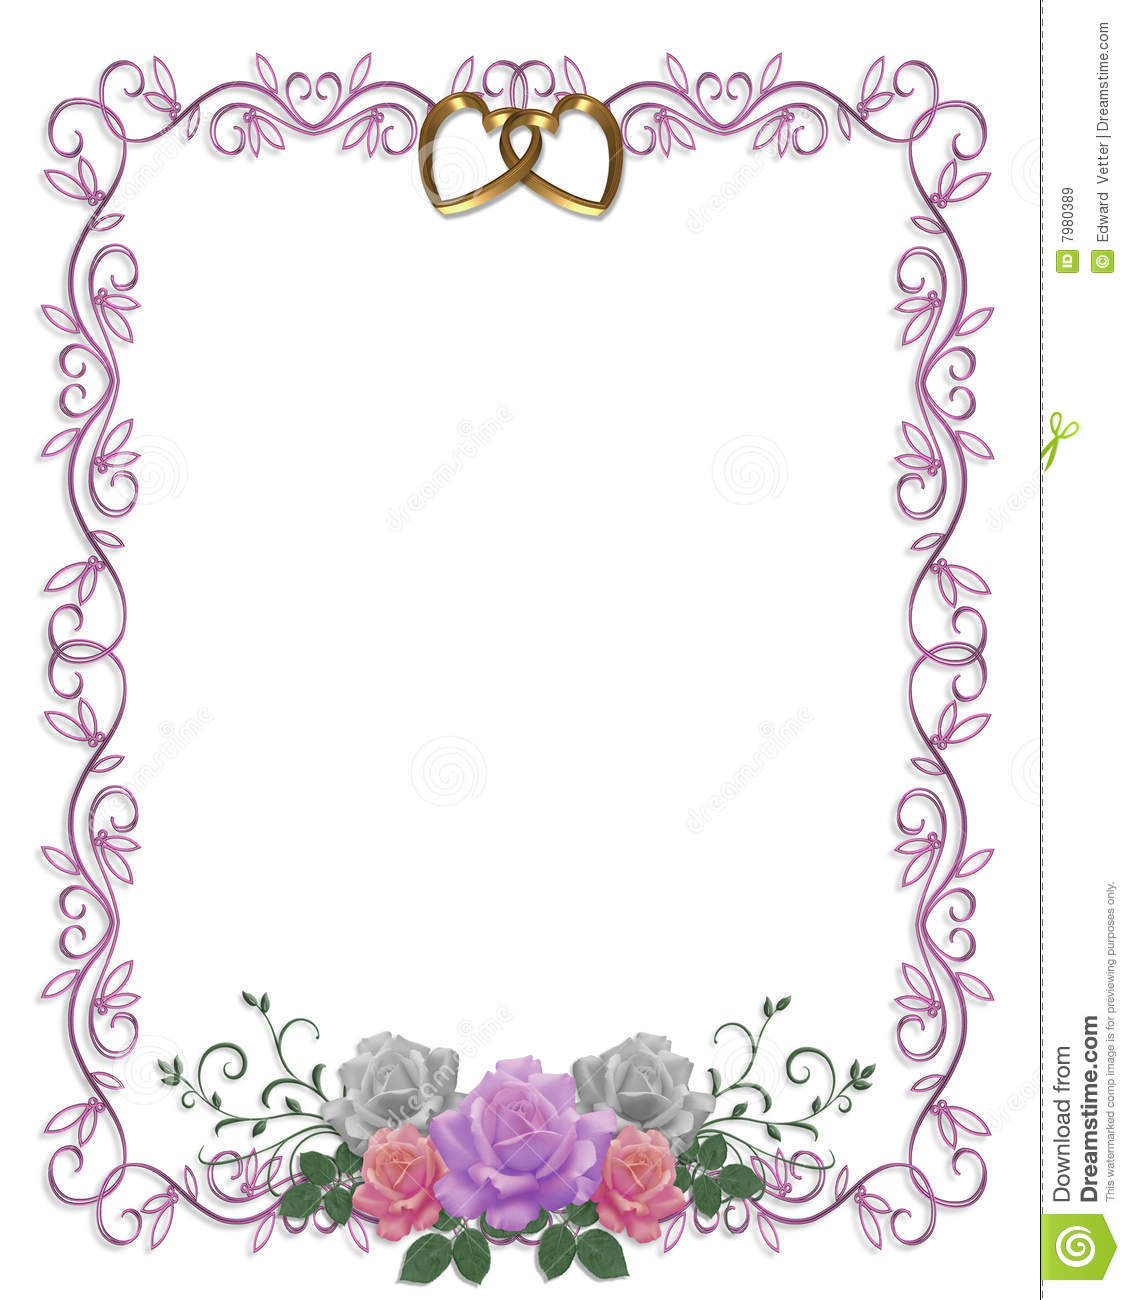 free wedding borders for invitations koni polycode co